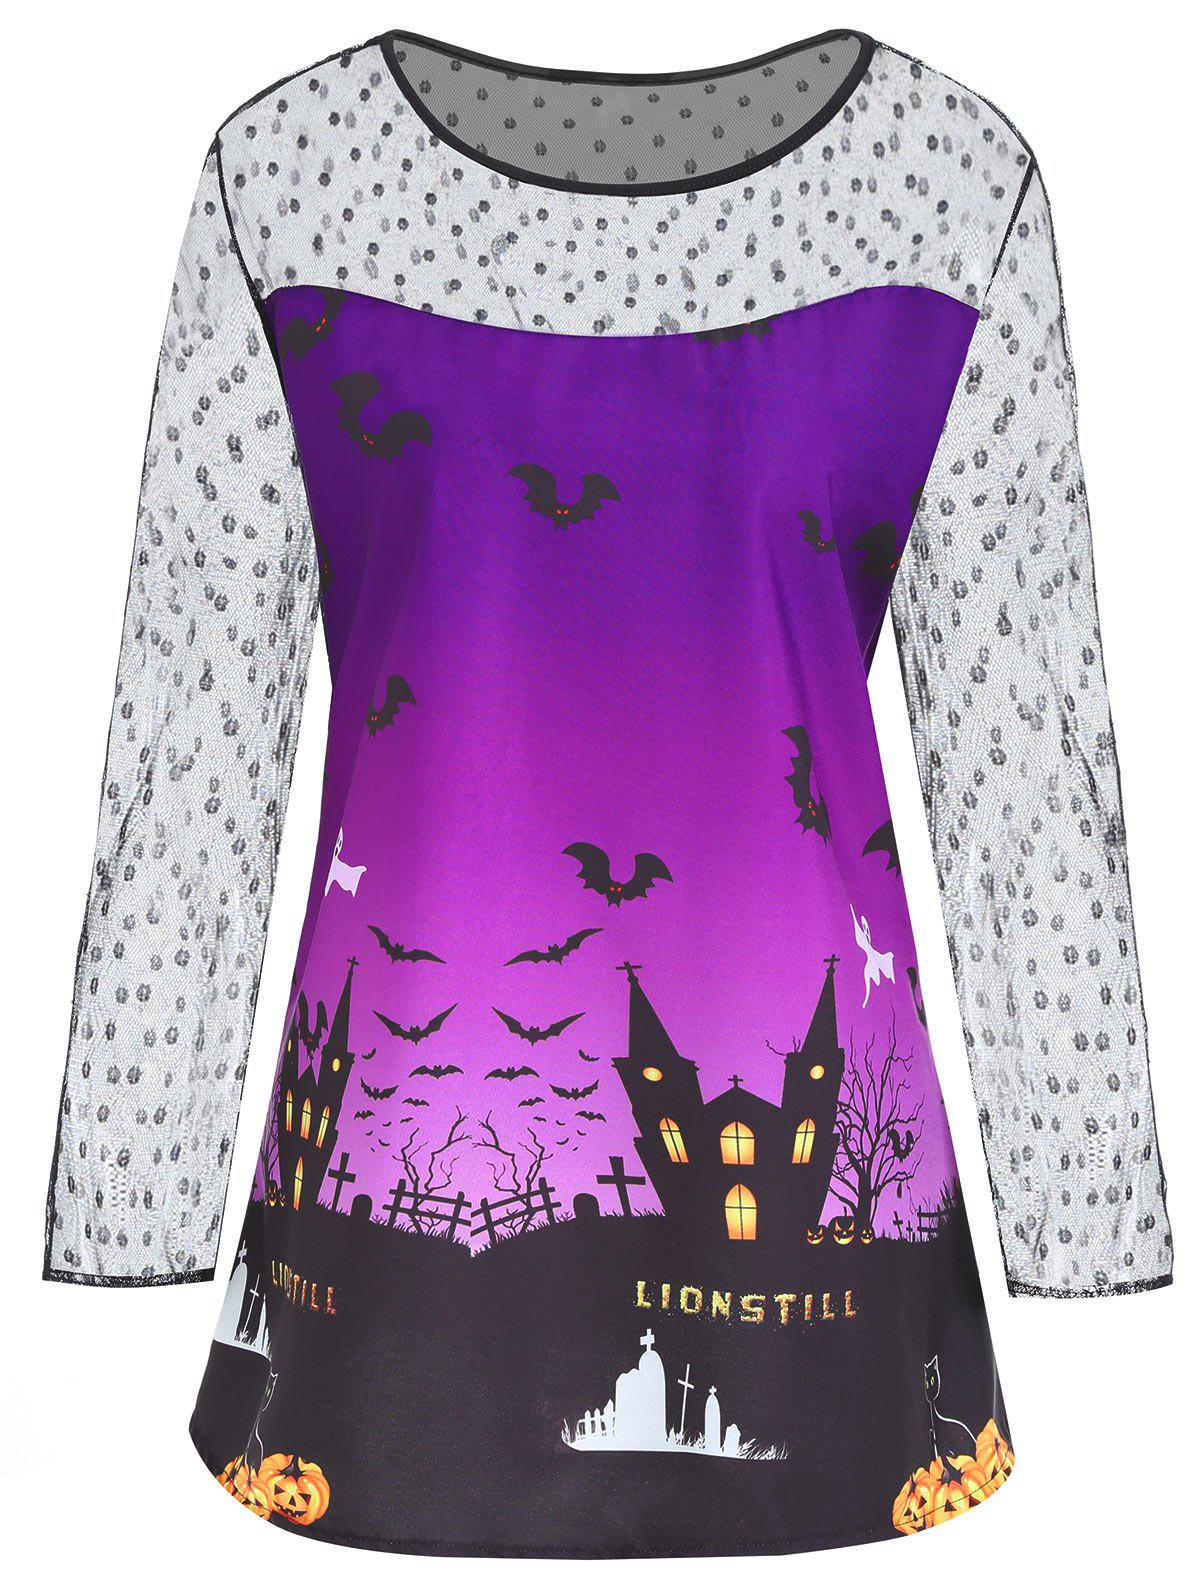 Plus Size Halloween Castle Bat Print Lace Panel T-shirtWOMEN<br><br>Size: 2XL; Color: PURPLE; Material: Cotton,Polyester; Shirt Length: Regular; Sleeve Length: Full; Collar: Round Neck; Style: Fashion; Season: Fall; Embellishment: Lace; Pattern Type: Print; Weight: 0.1800kg; Package Contents: 1 x T-shirt;